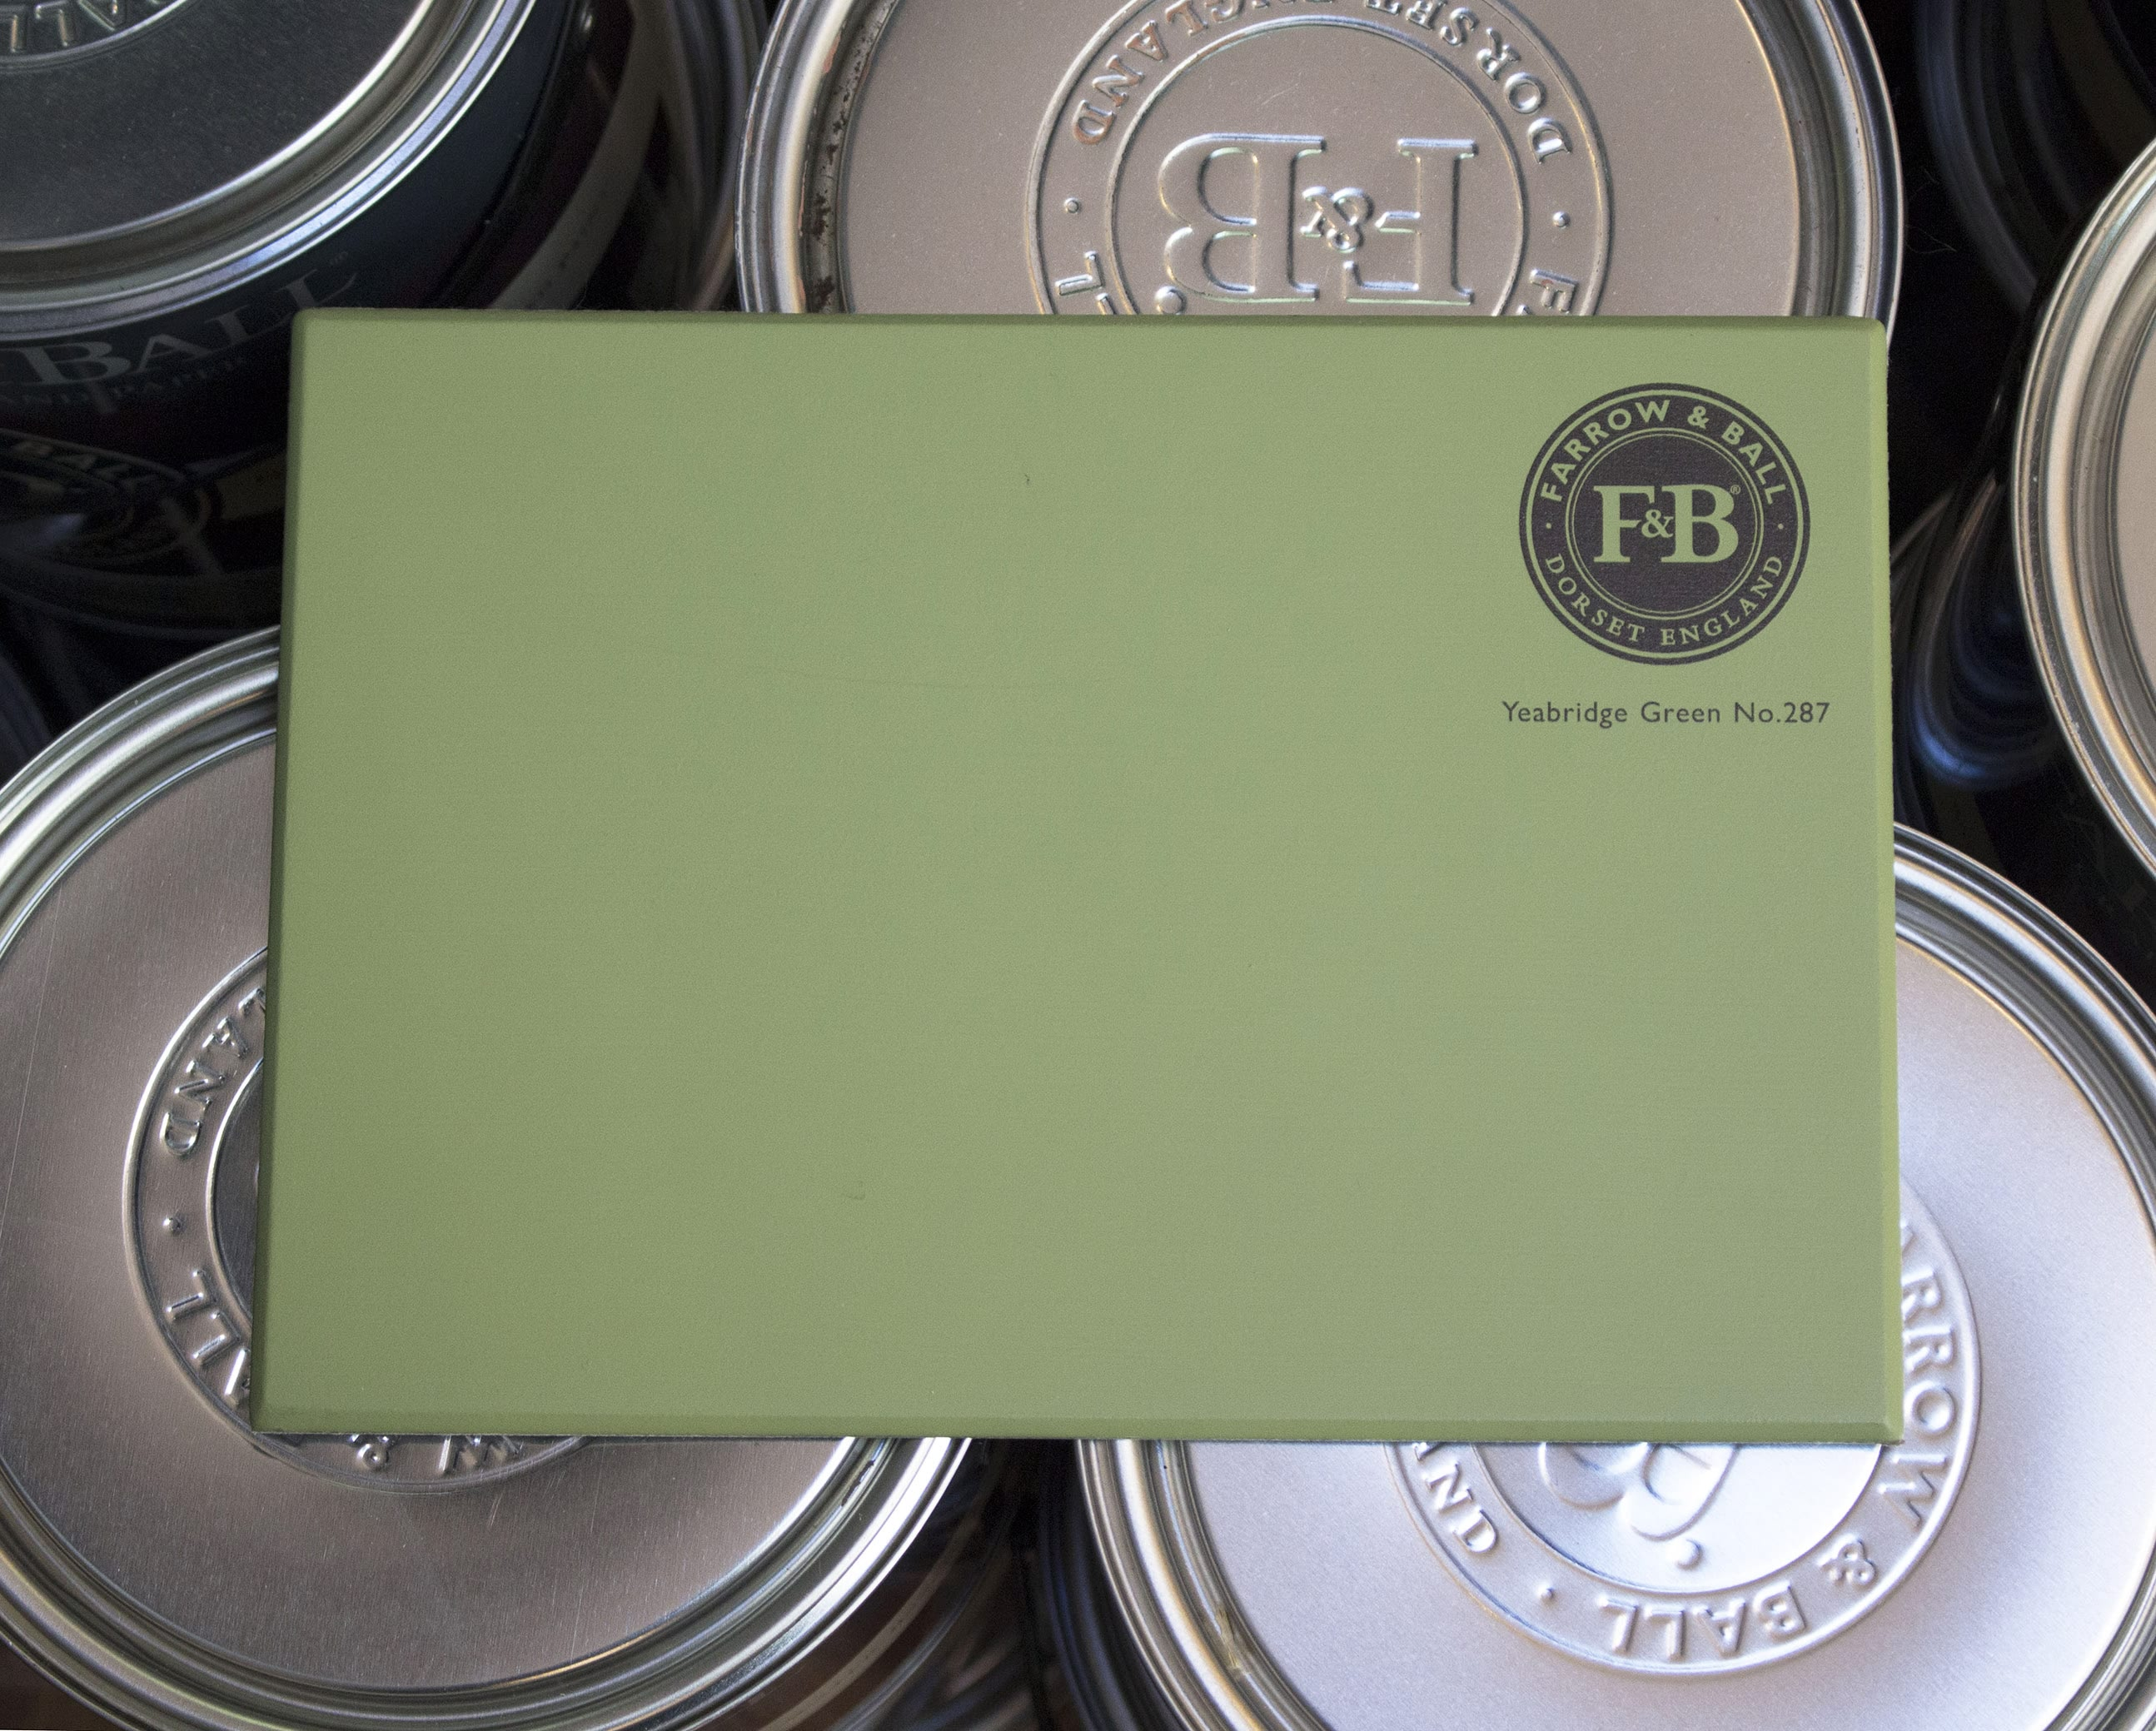 farrow&ball, farrow and ball, paint, decorating, paint brush, yeabridge green